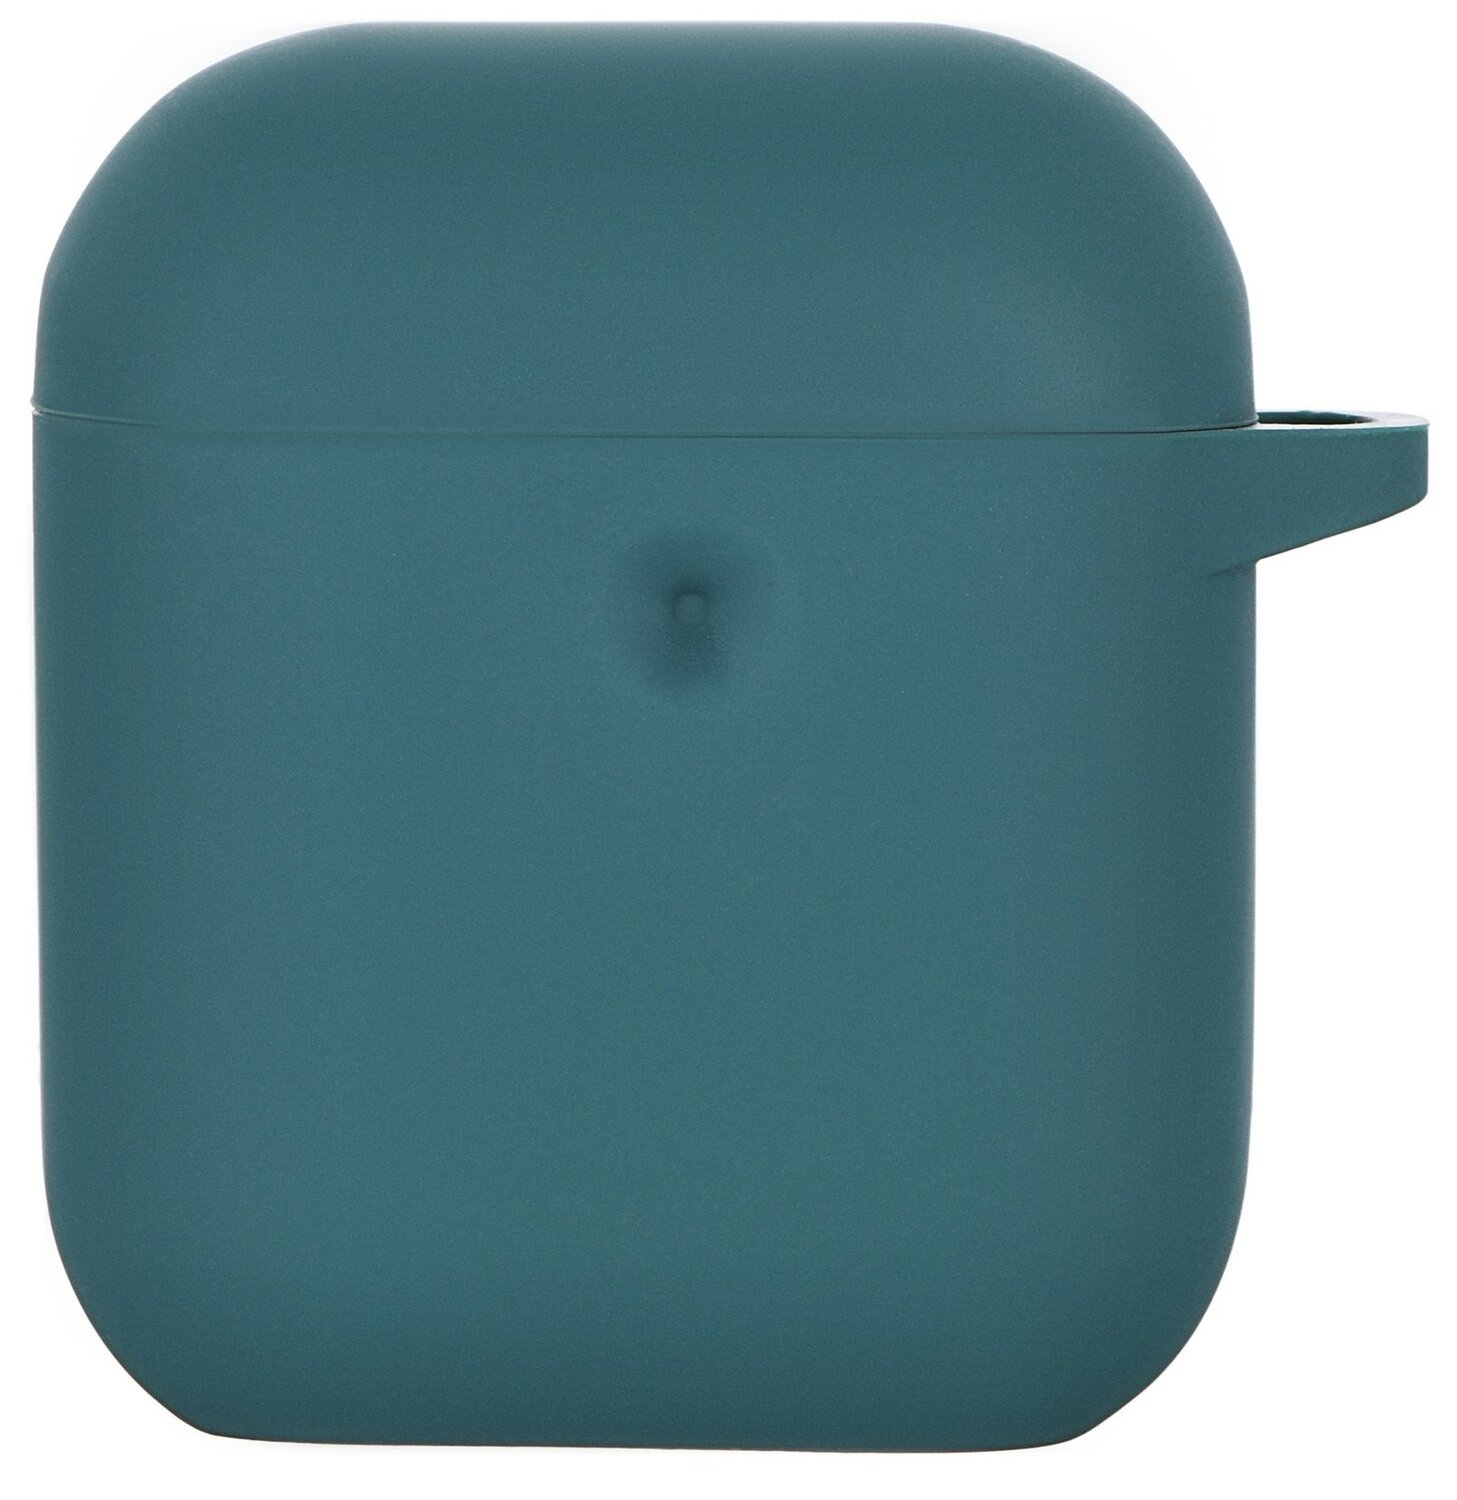 Чехол 2Е для Apple AirPods Pure Color Silicone (3mm) Star Blue фото 2